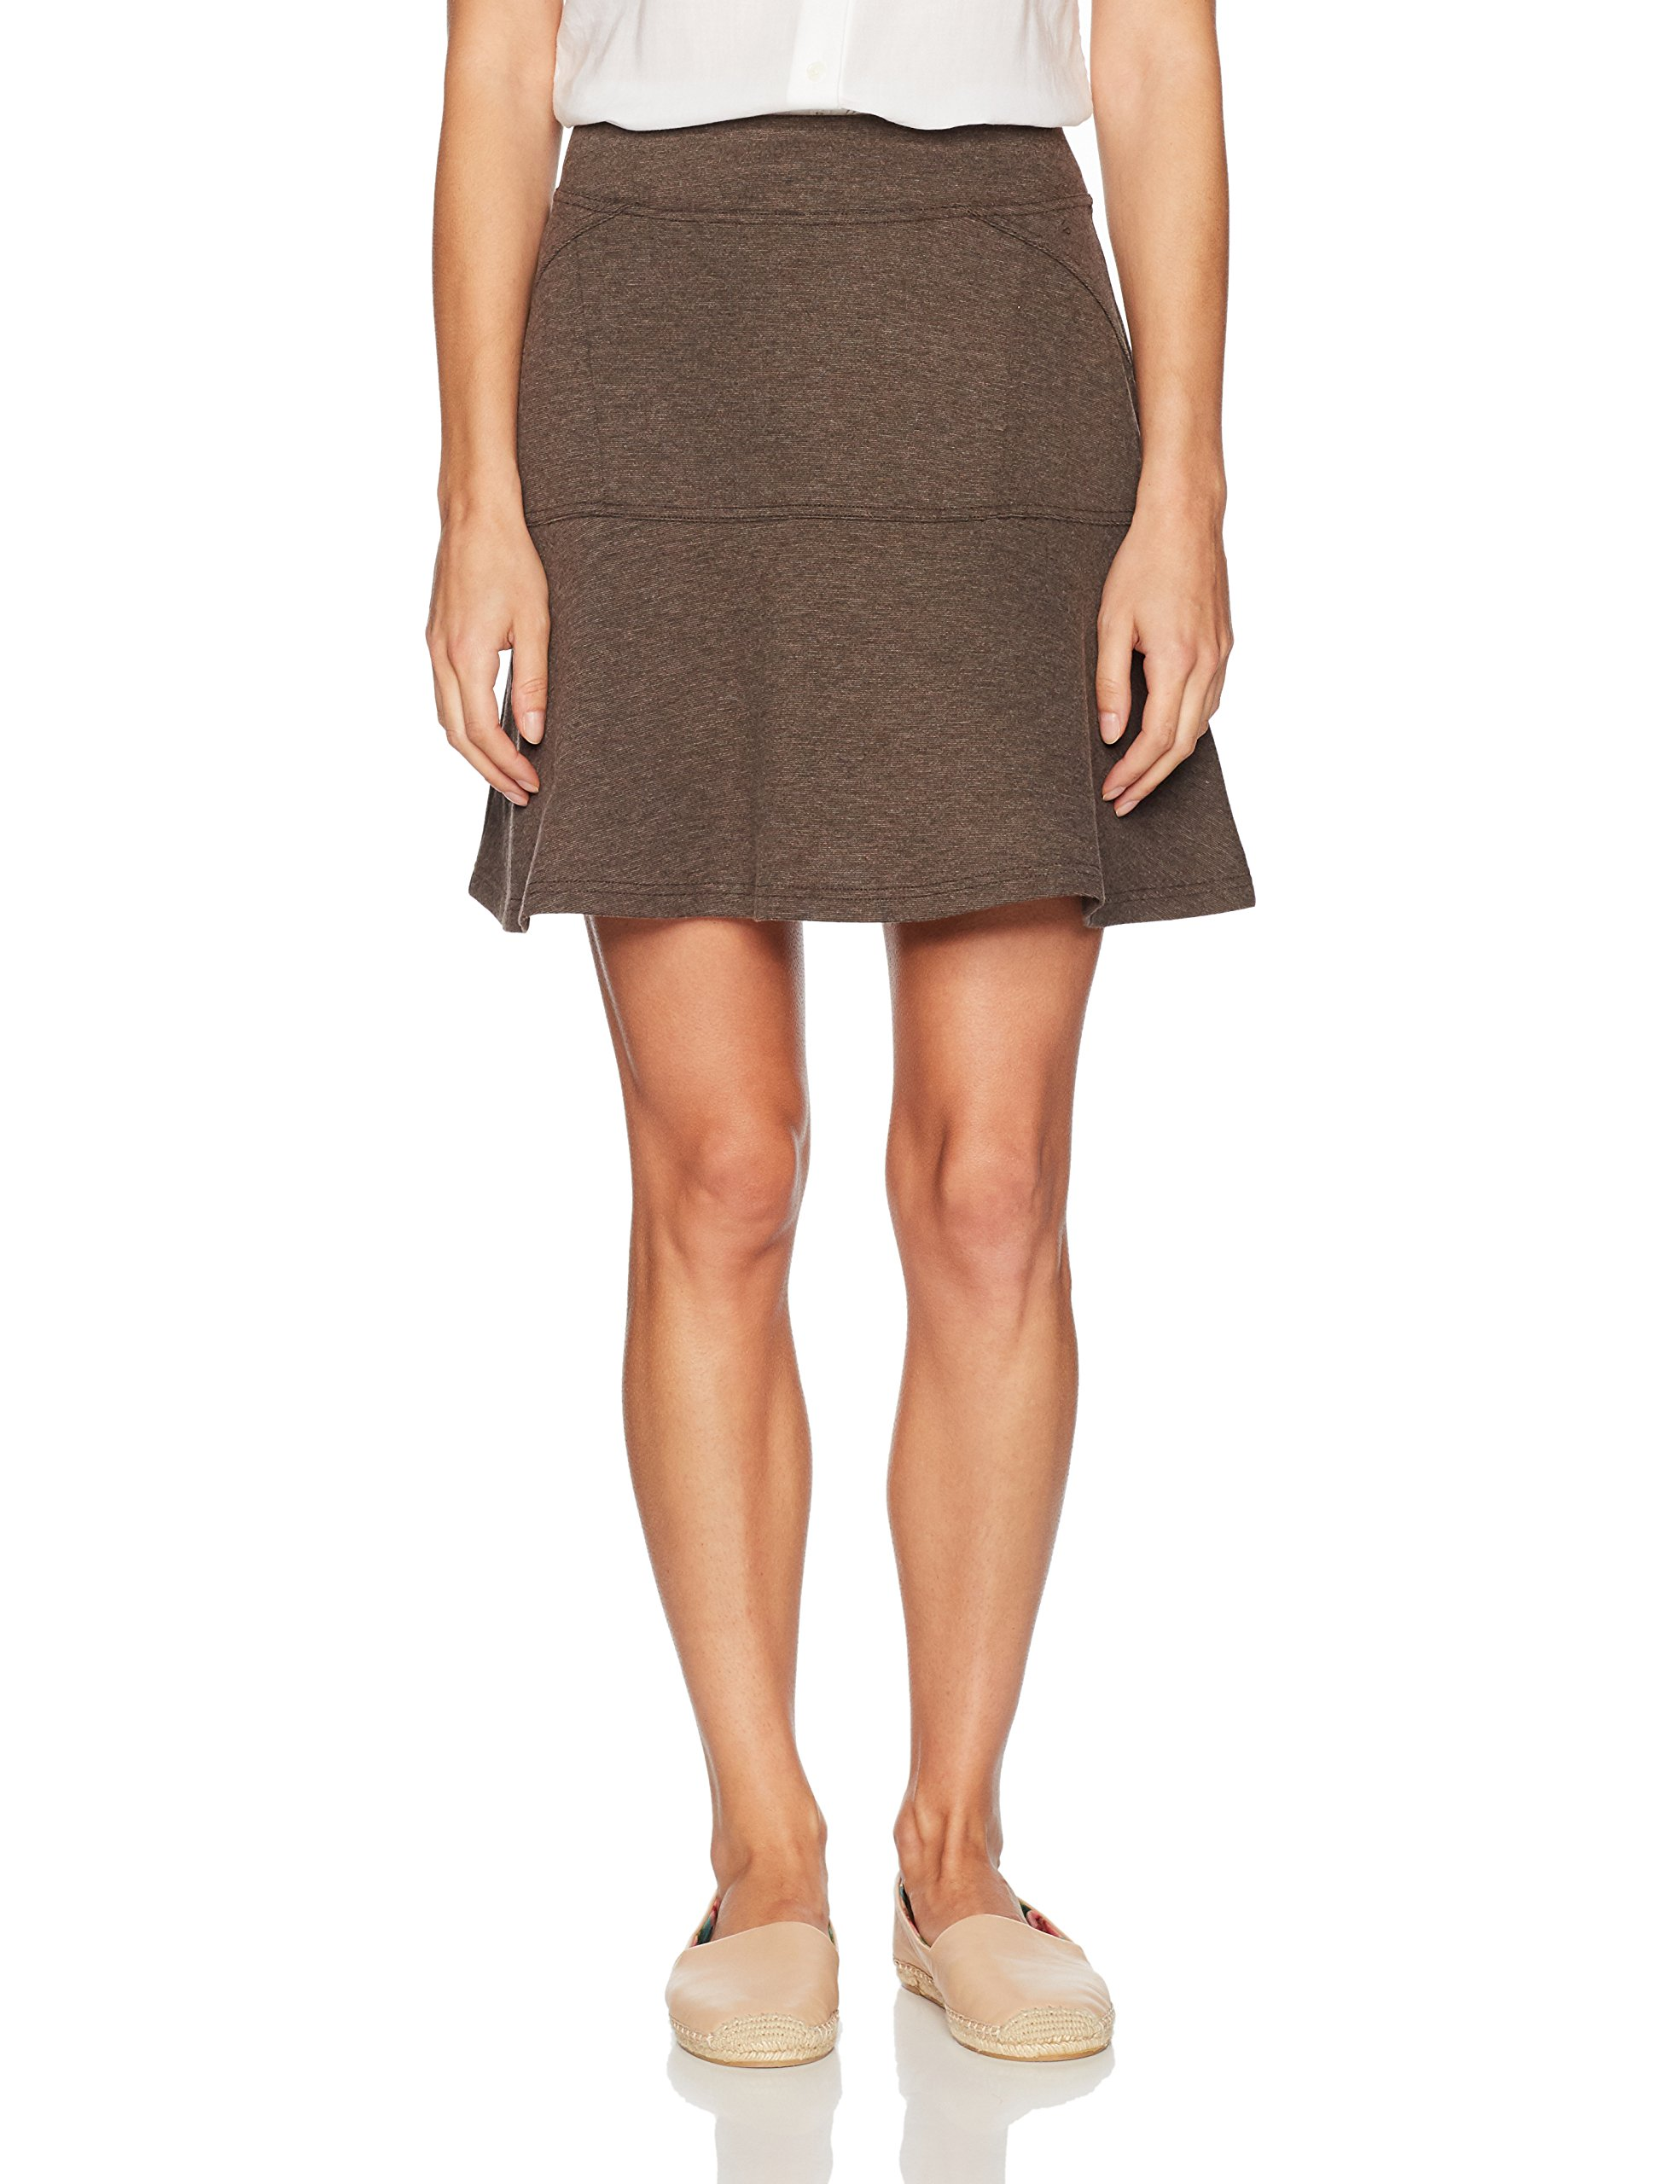 prAna Women's Gianna Skirt, X-Small, Brown by prAna